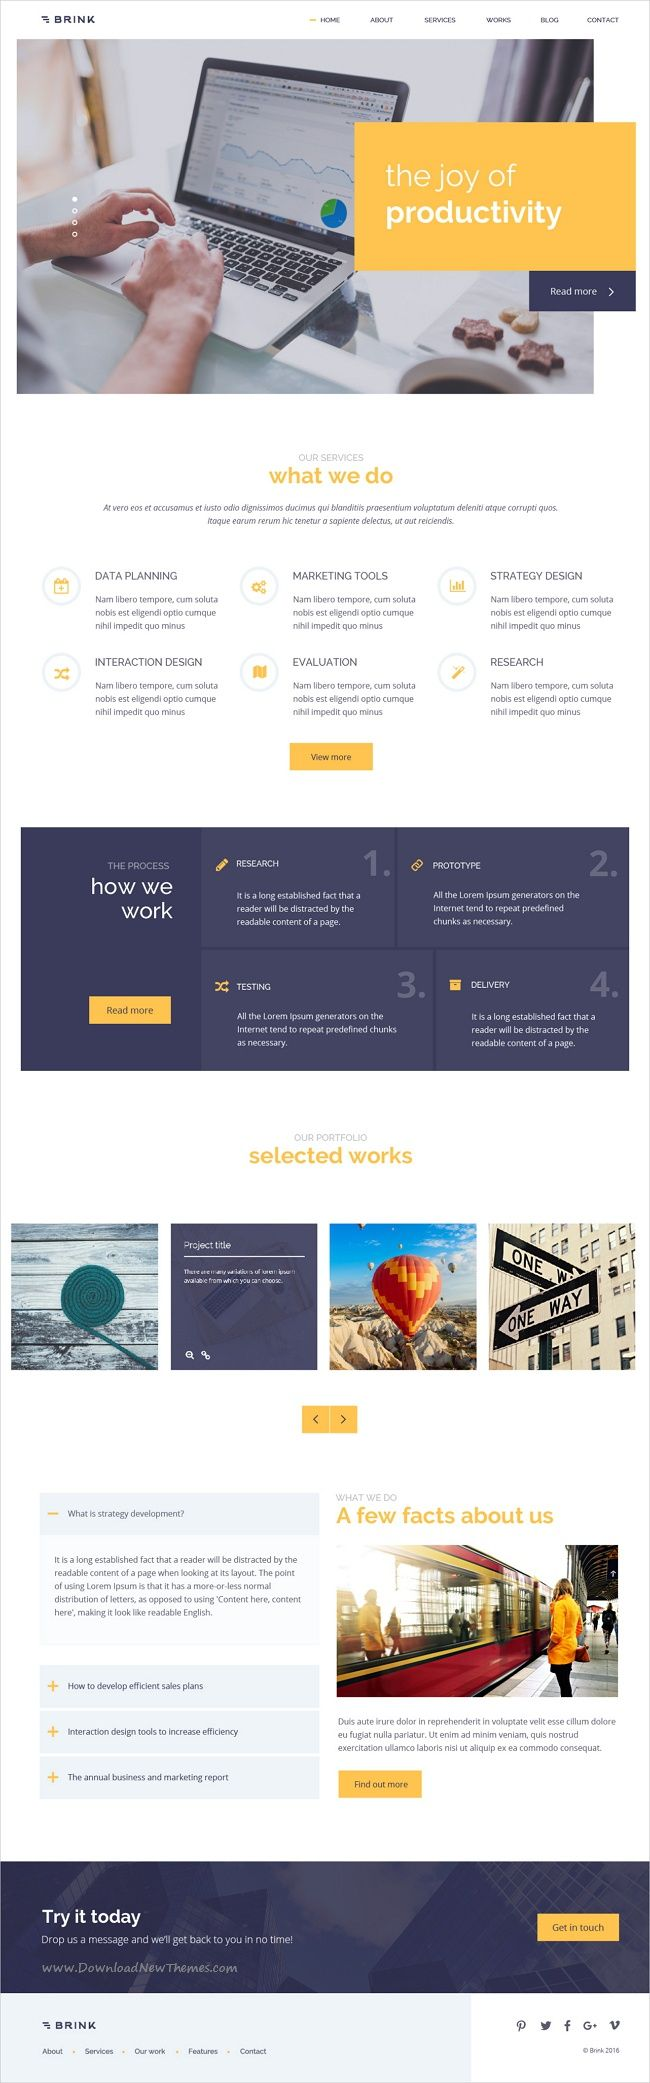 Brink is a creative and fresh business #PSD template for corporate or #marketing and #finance websites with 4 homepage variations and 18+ organized PSD files download now➩ https://themeforest.net/item/brink-creative-business-psd-template/19343455?ref=Datasata